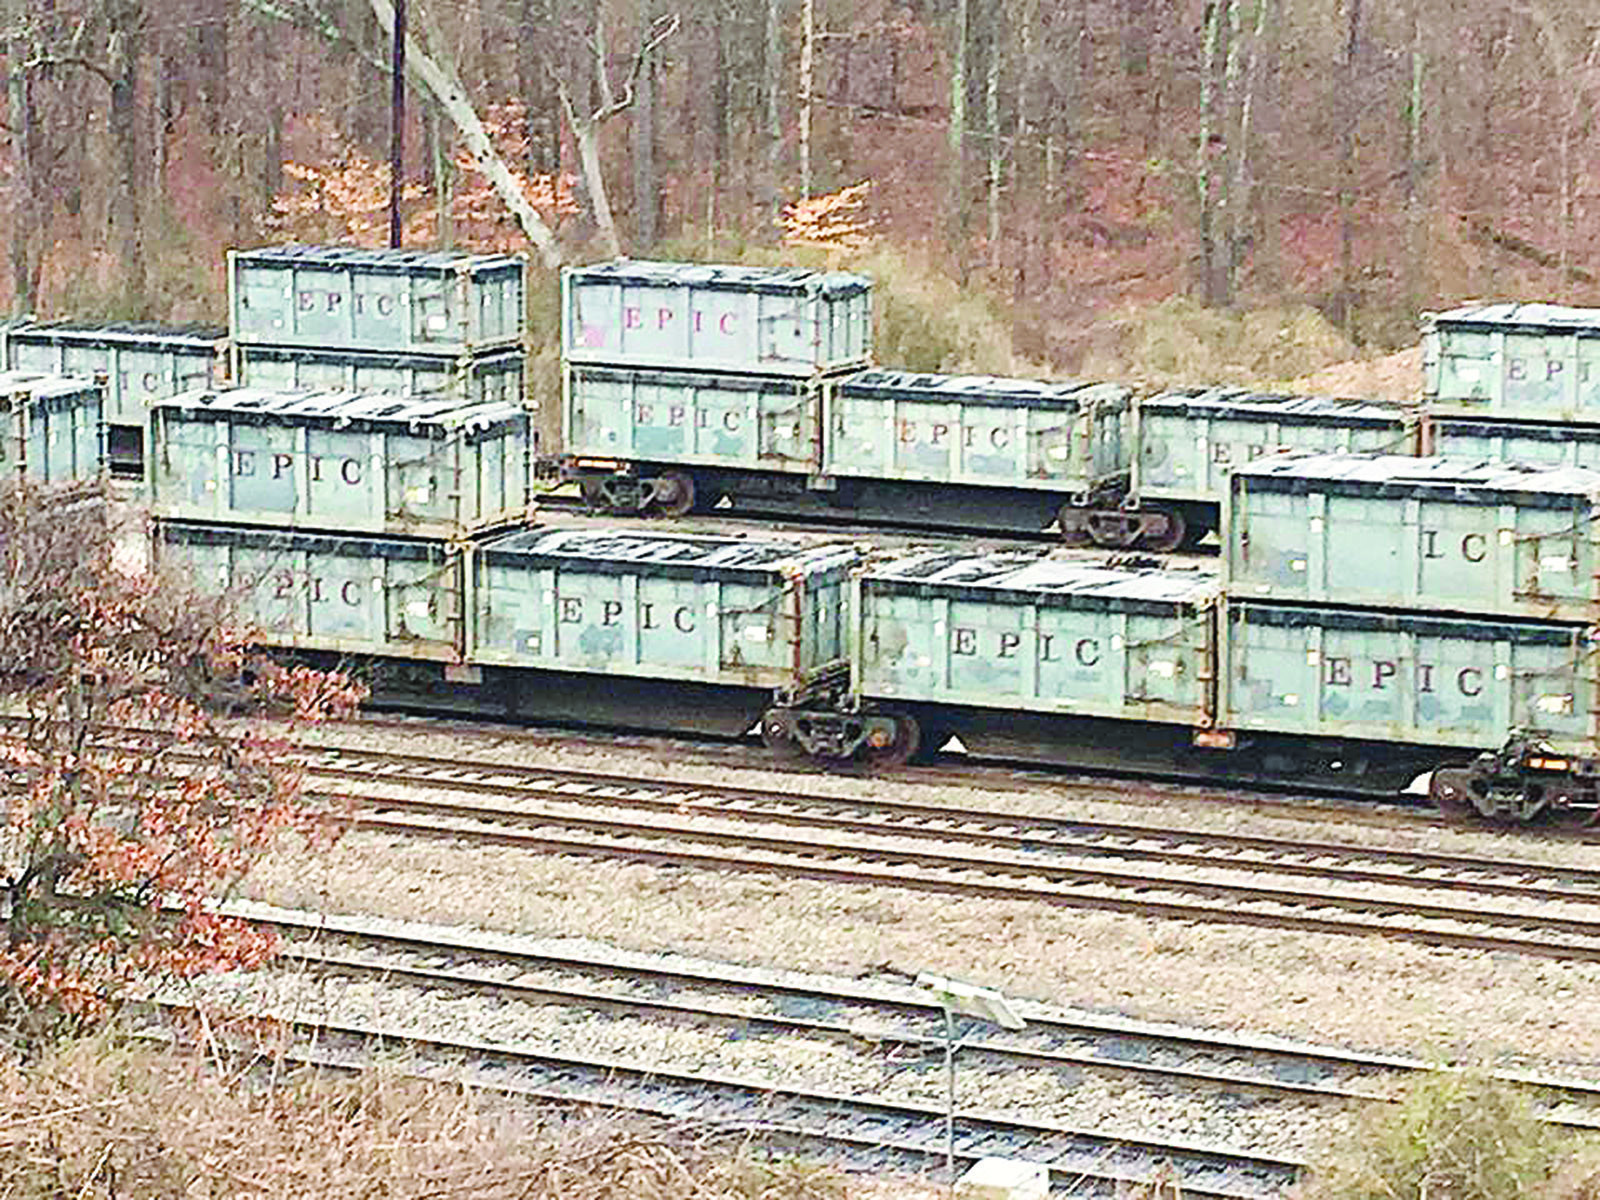 Some 250 rail cars containing bio-solid sewage waste materials that have been sitting on a Norfolk-Southern Railway spur located near downtown Parrish for several months. Some of those containers have been removed, but about 80 still remain. The containers were initially being transported by rail to Big Sky Environmental from locations in New York and New Jersey.